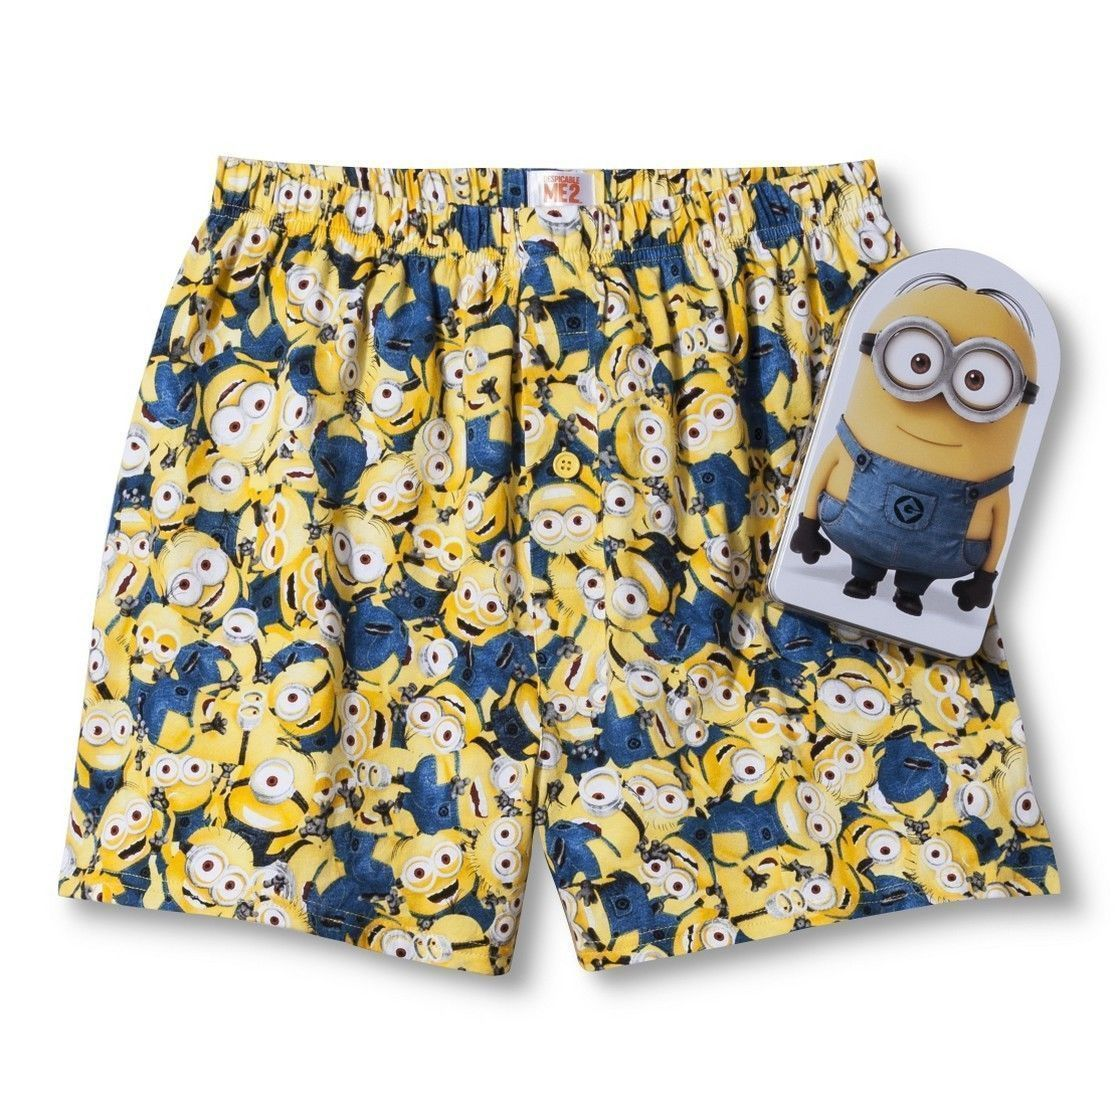 2190.Despicable Me *The Movie* Boxers in Gift Canister